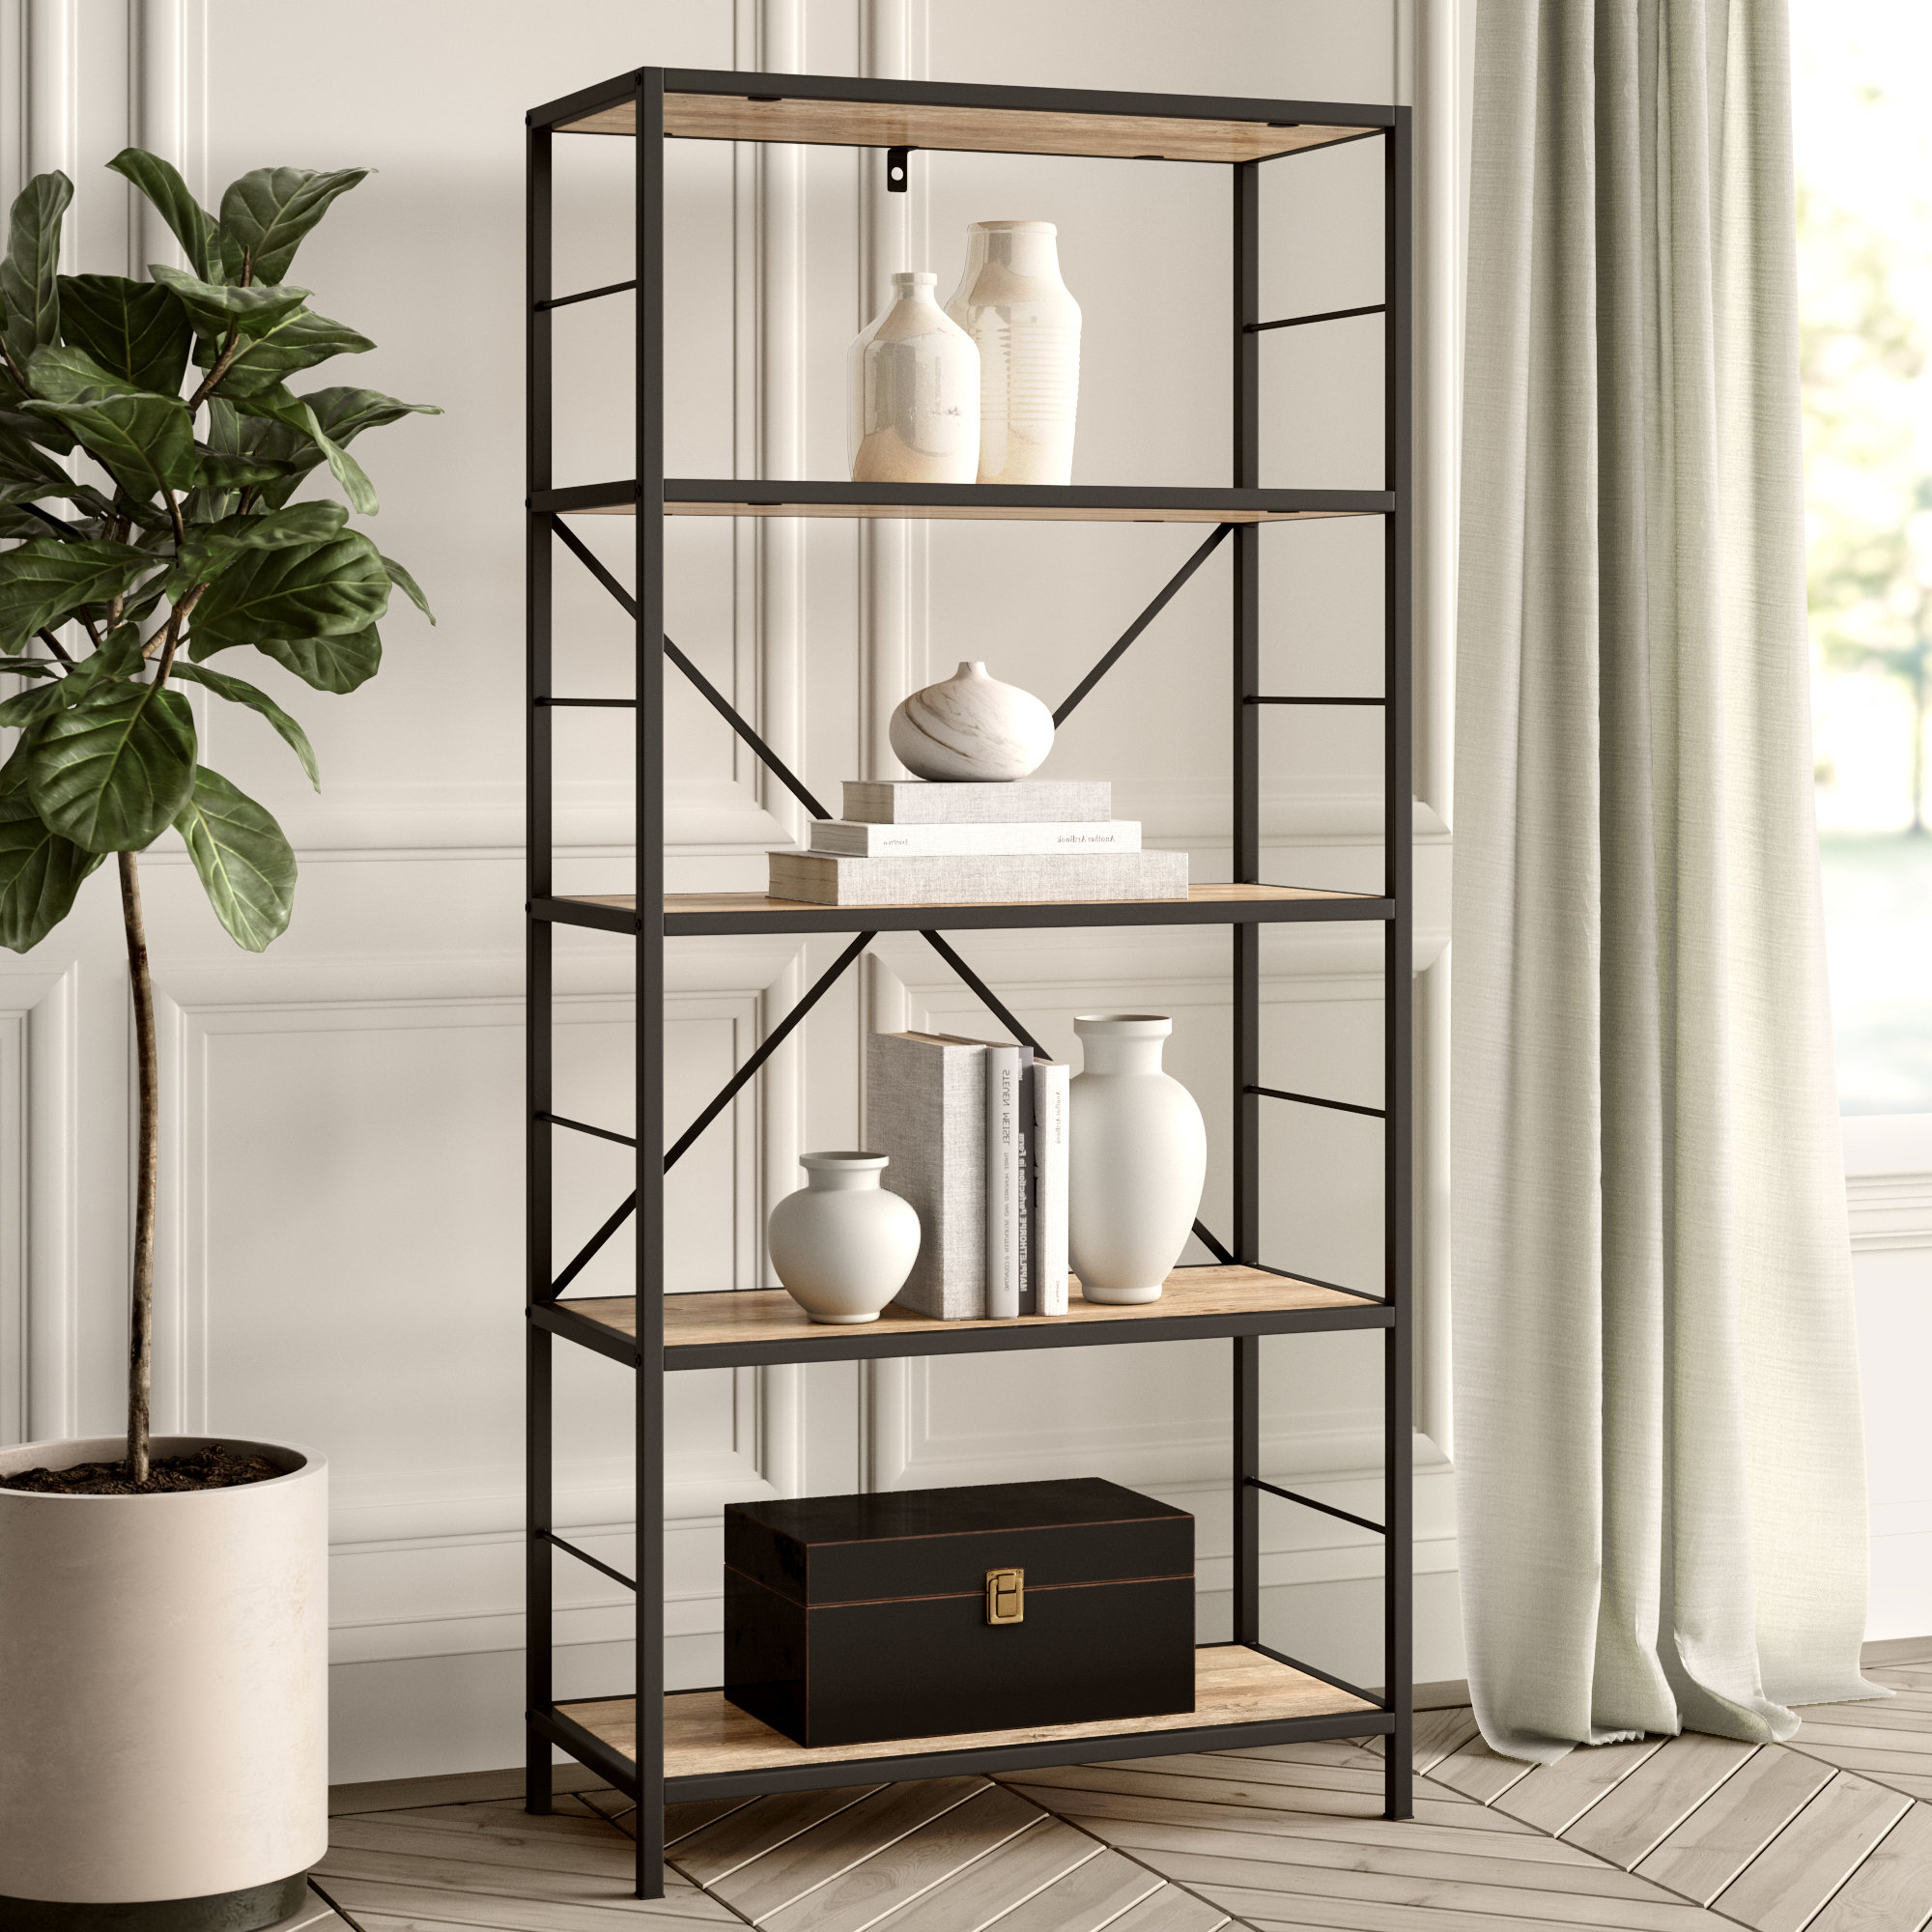 Preferred Macon Etagere Bookcase Intended For Aptos Etagere Bookcases (View 2 of 20)